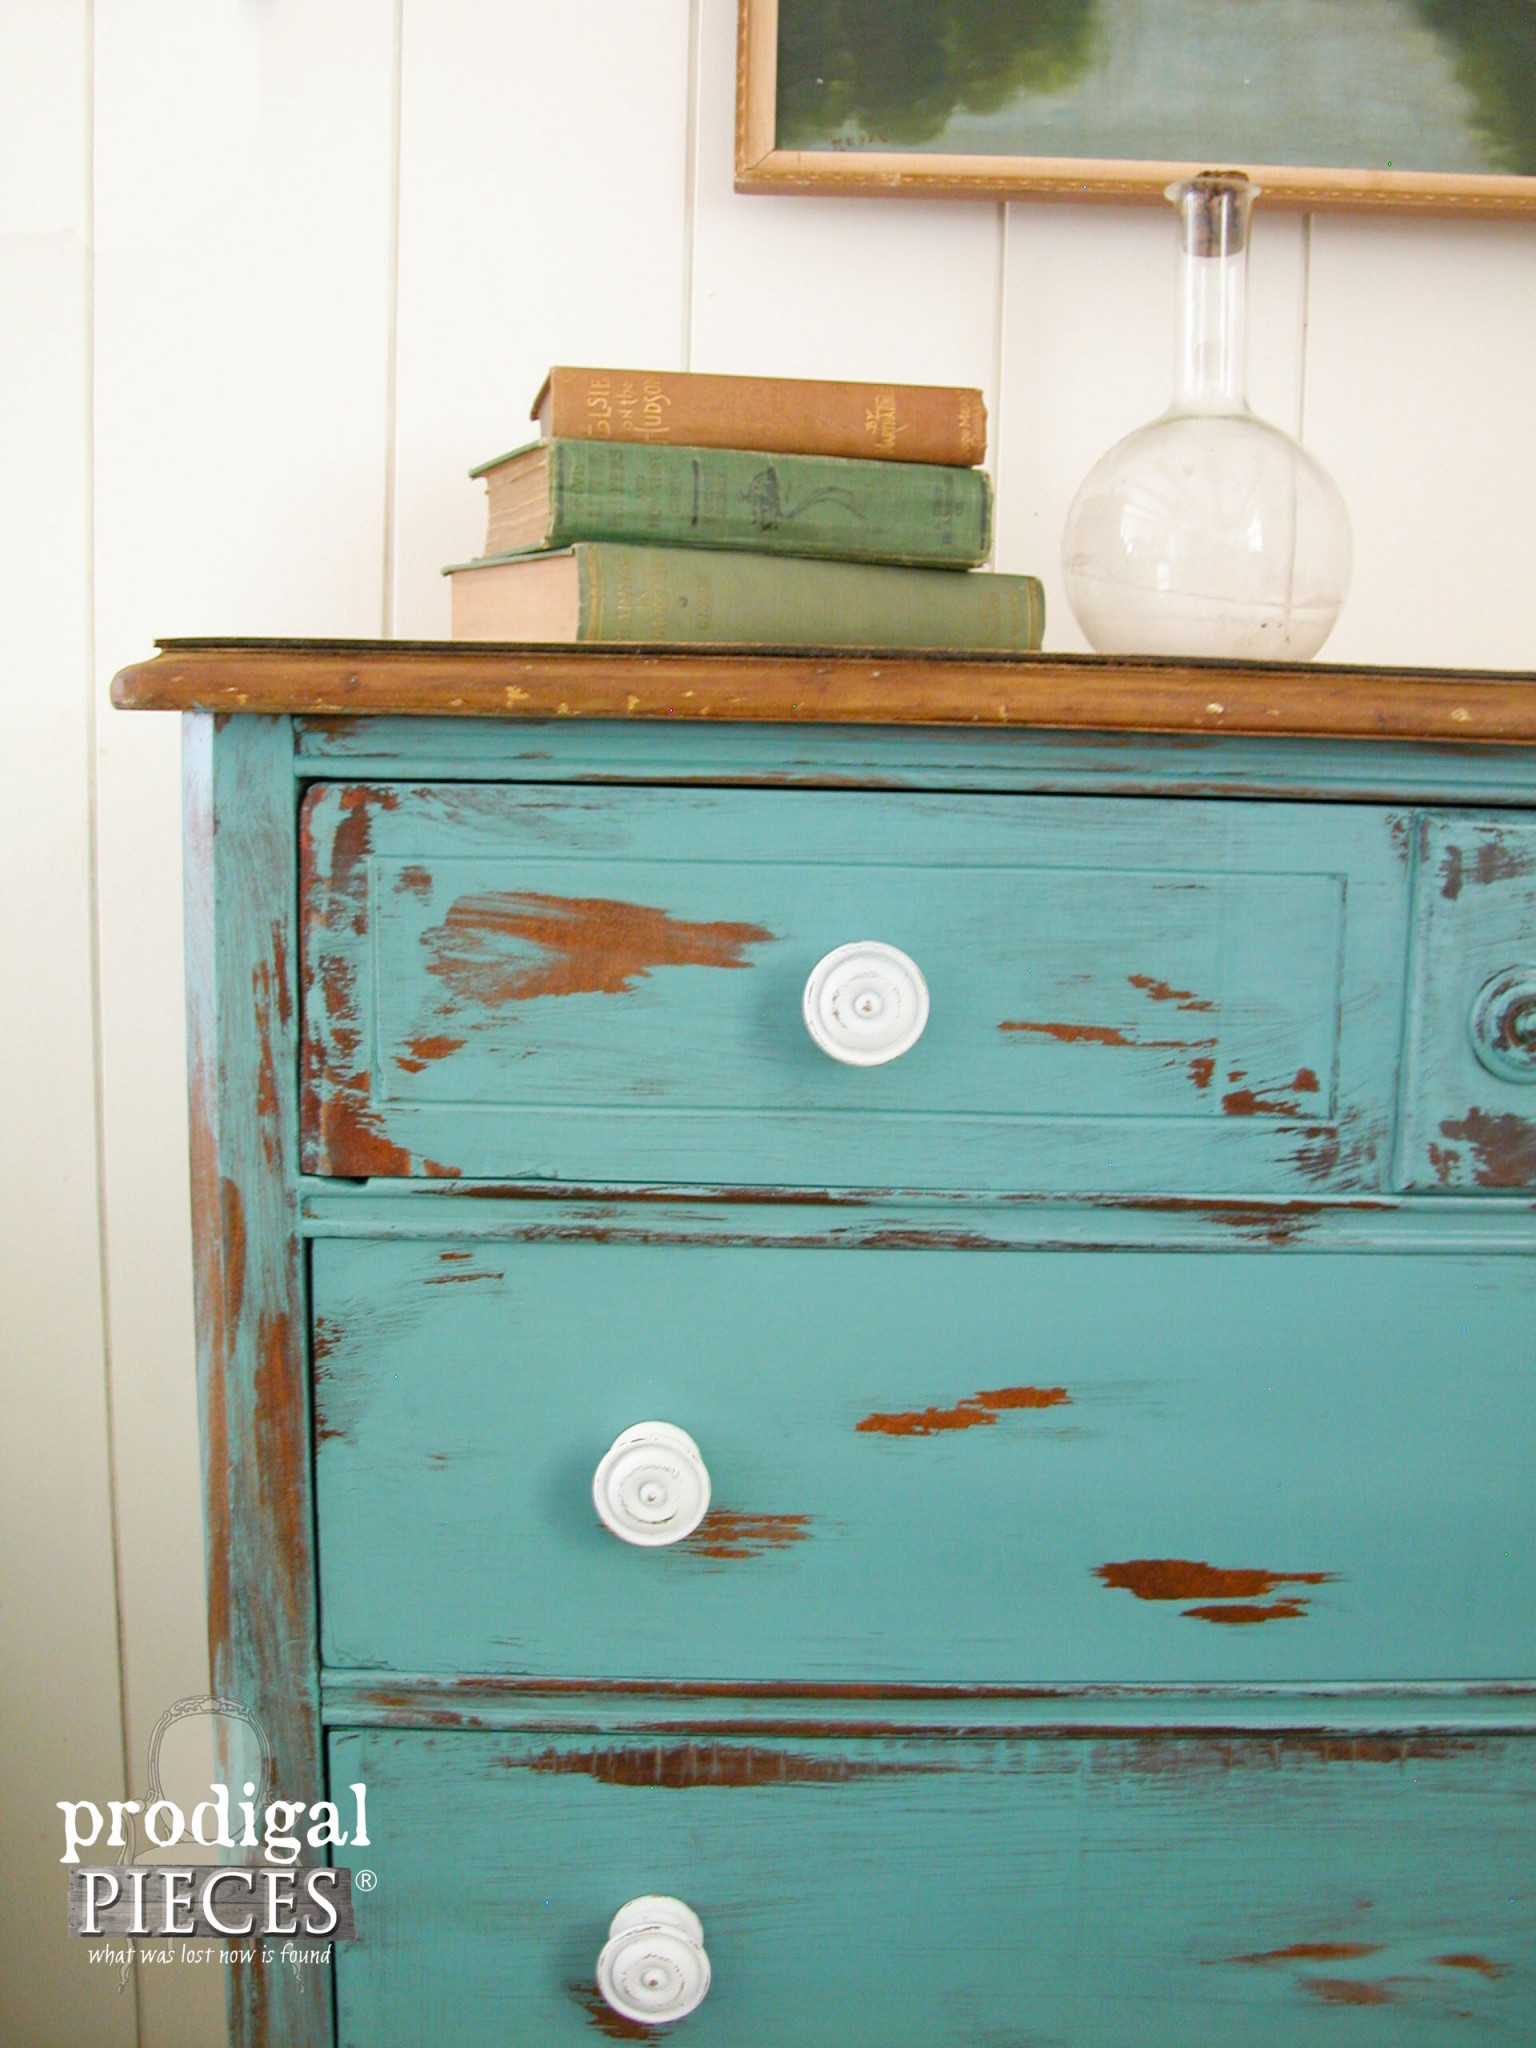 Exceptionnel Distressed Vintage Chest With Teal Paint Using Petroleum Jelly By Prodigal  Pieces | Www.prodigalpieces